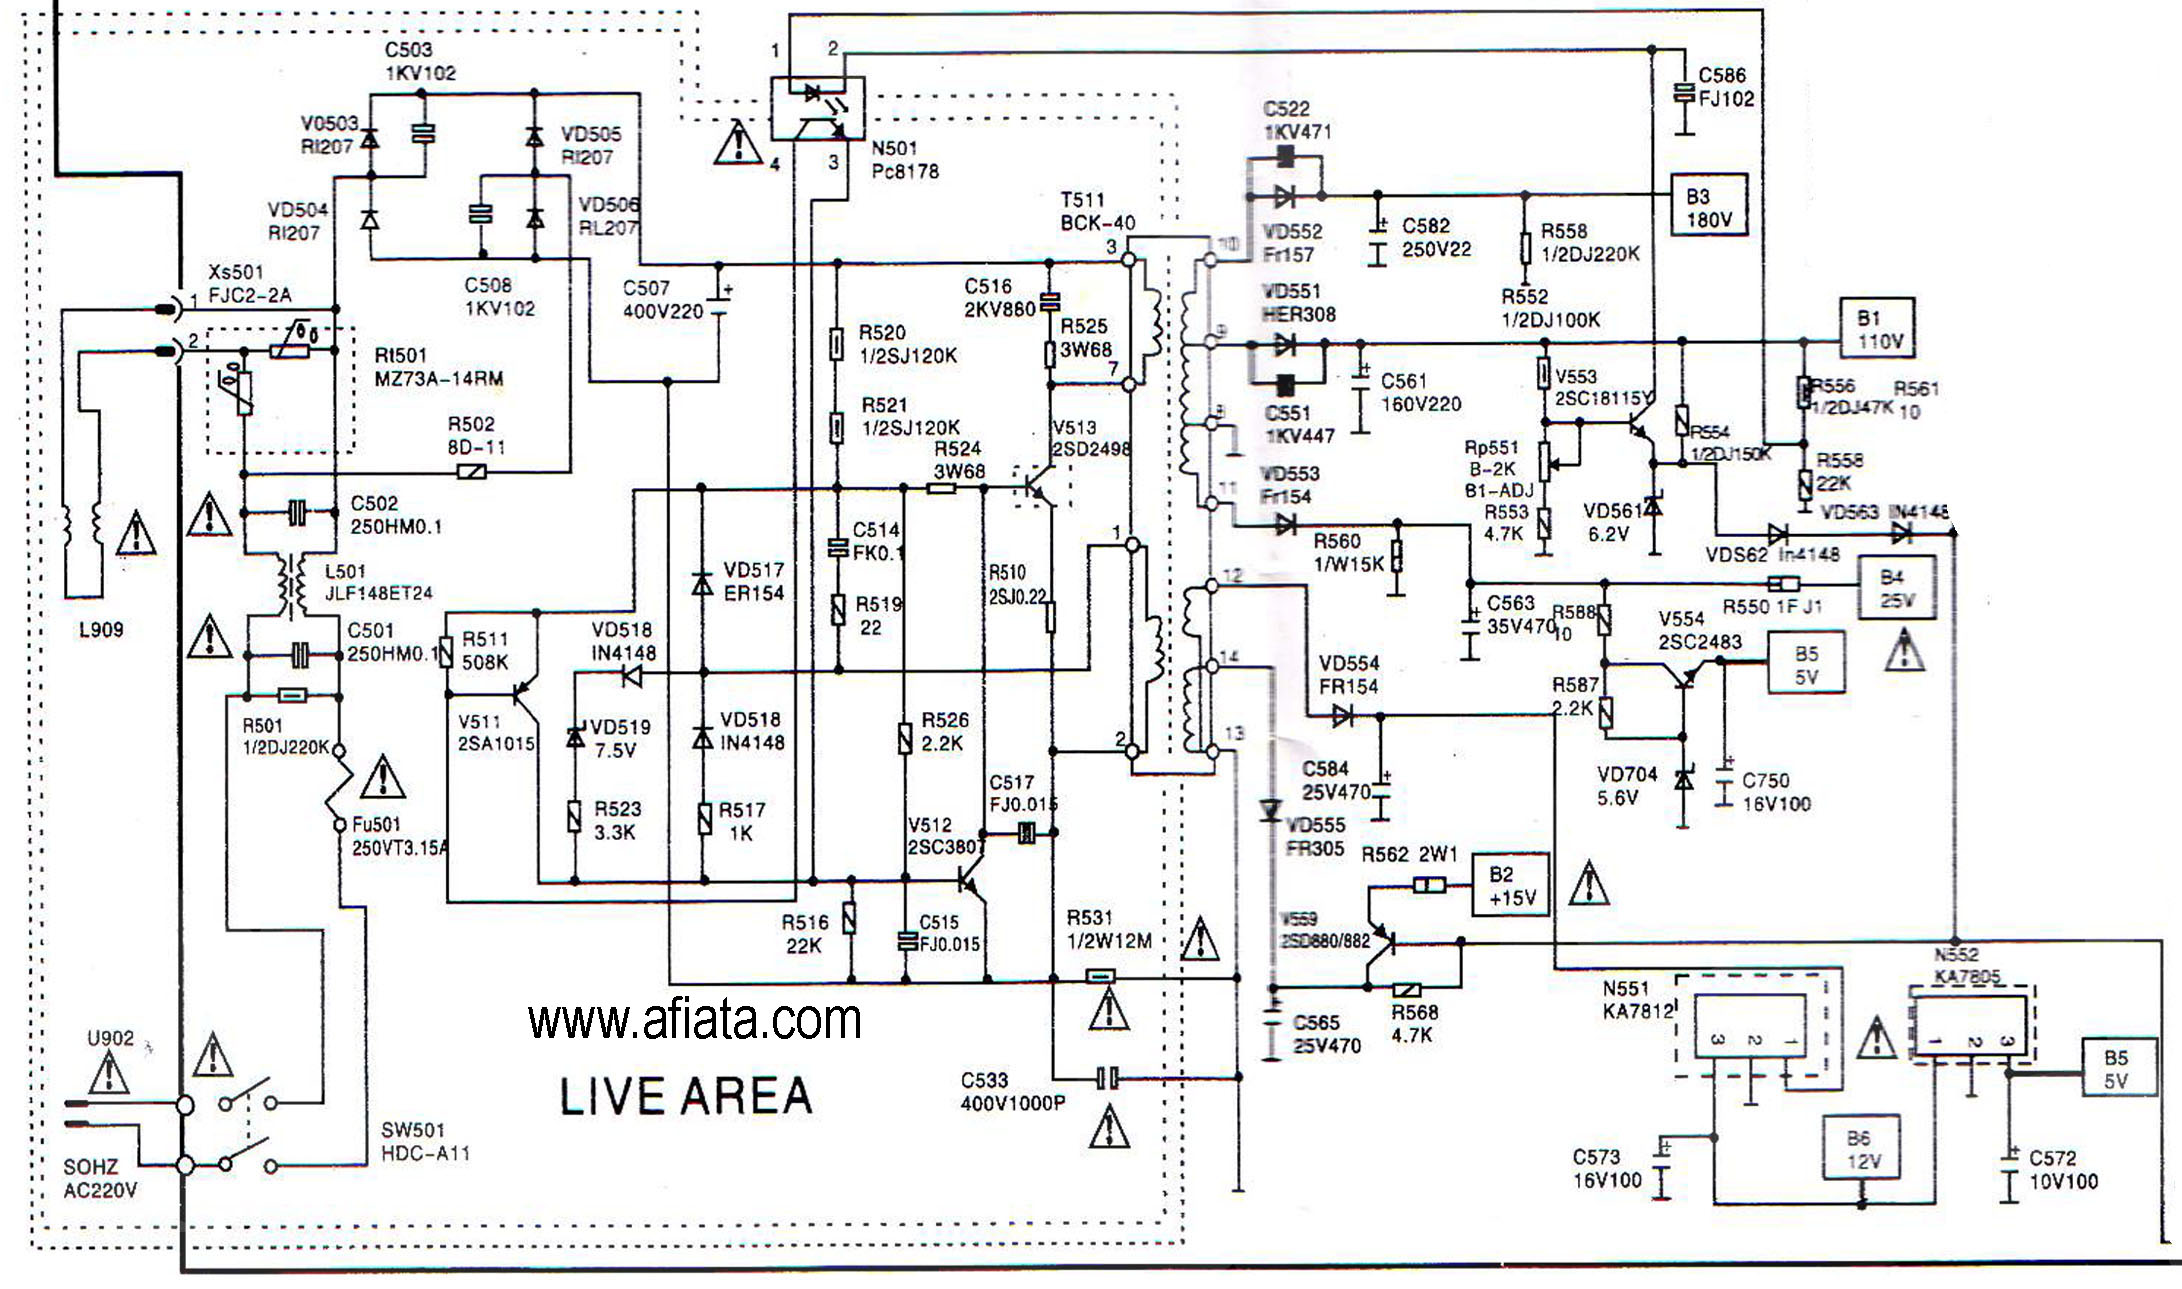 bell fibe tv wiring diagram boat multiple battery diagrams samsung schematic get free image about